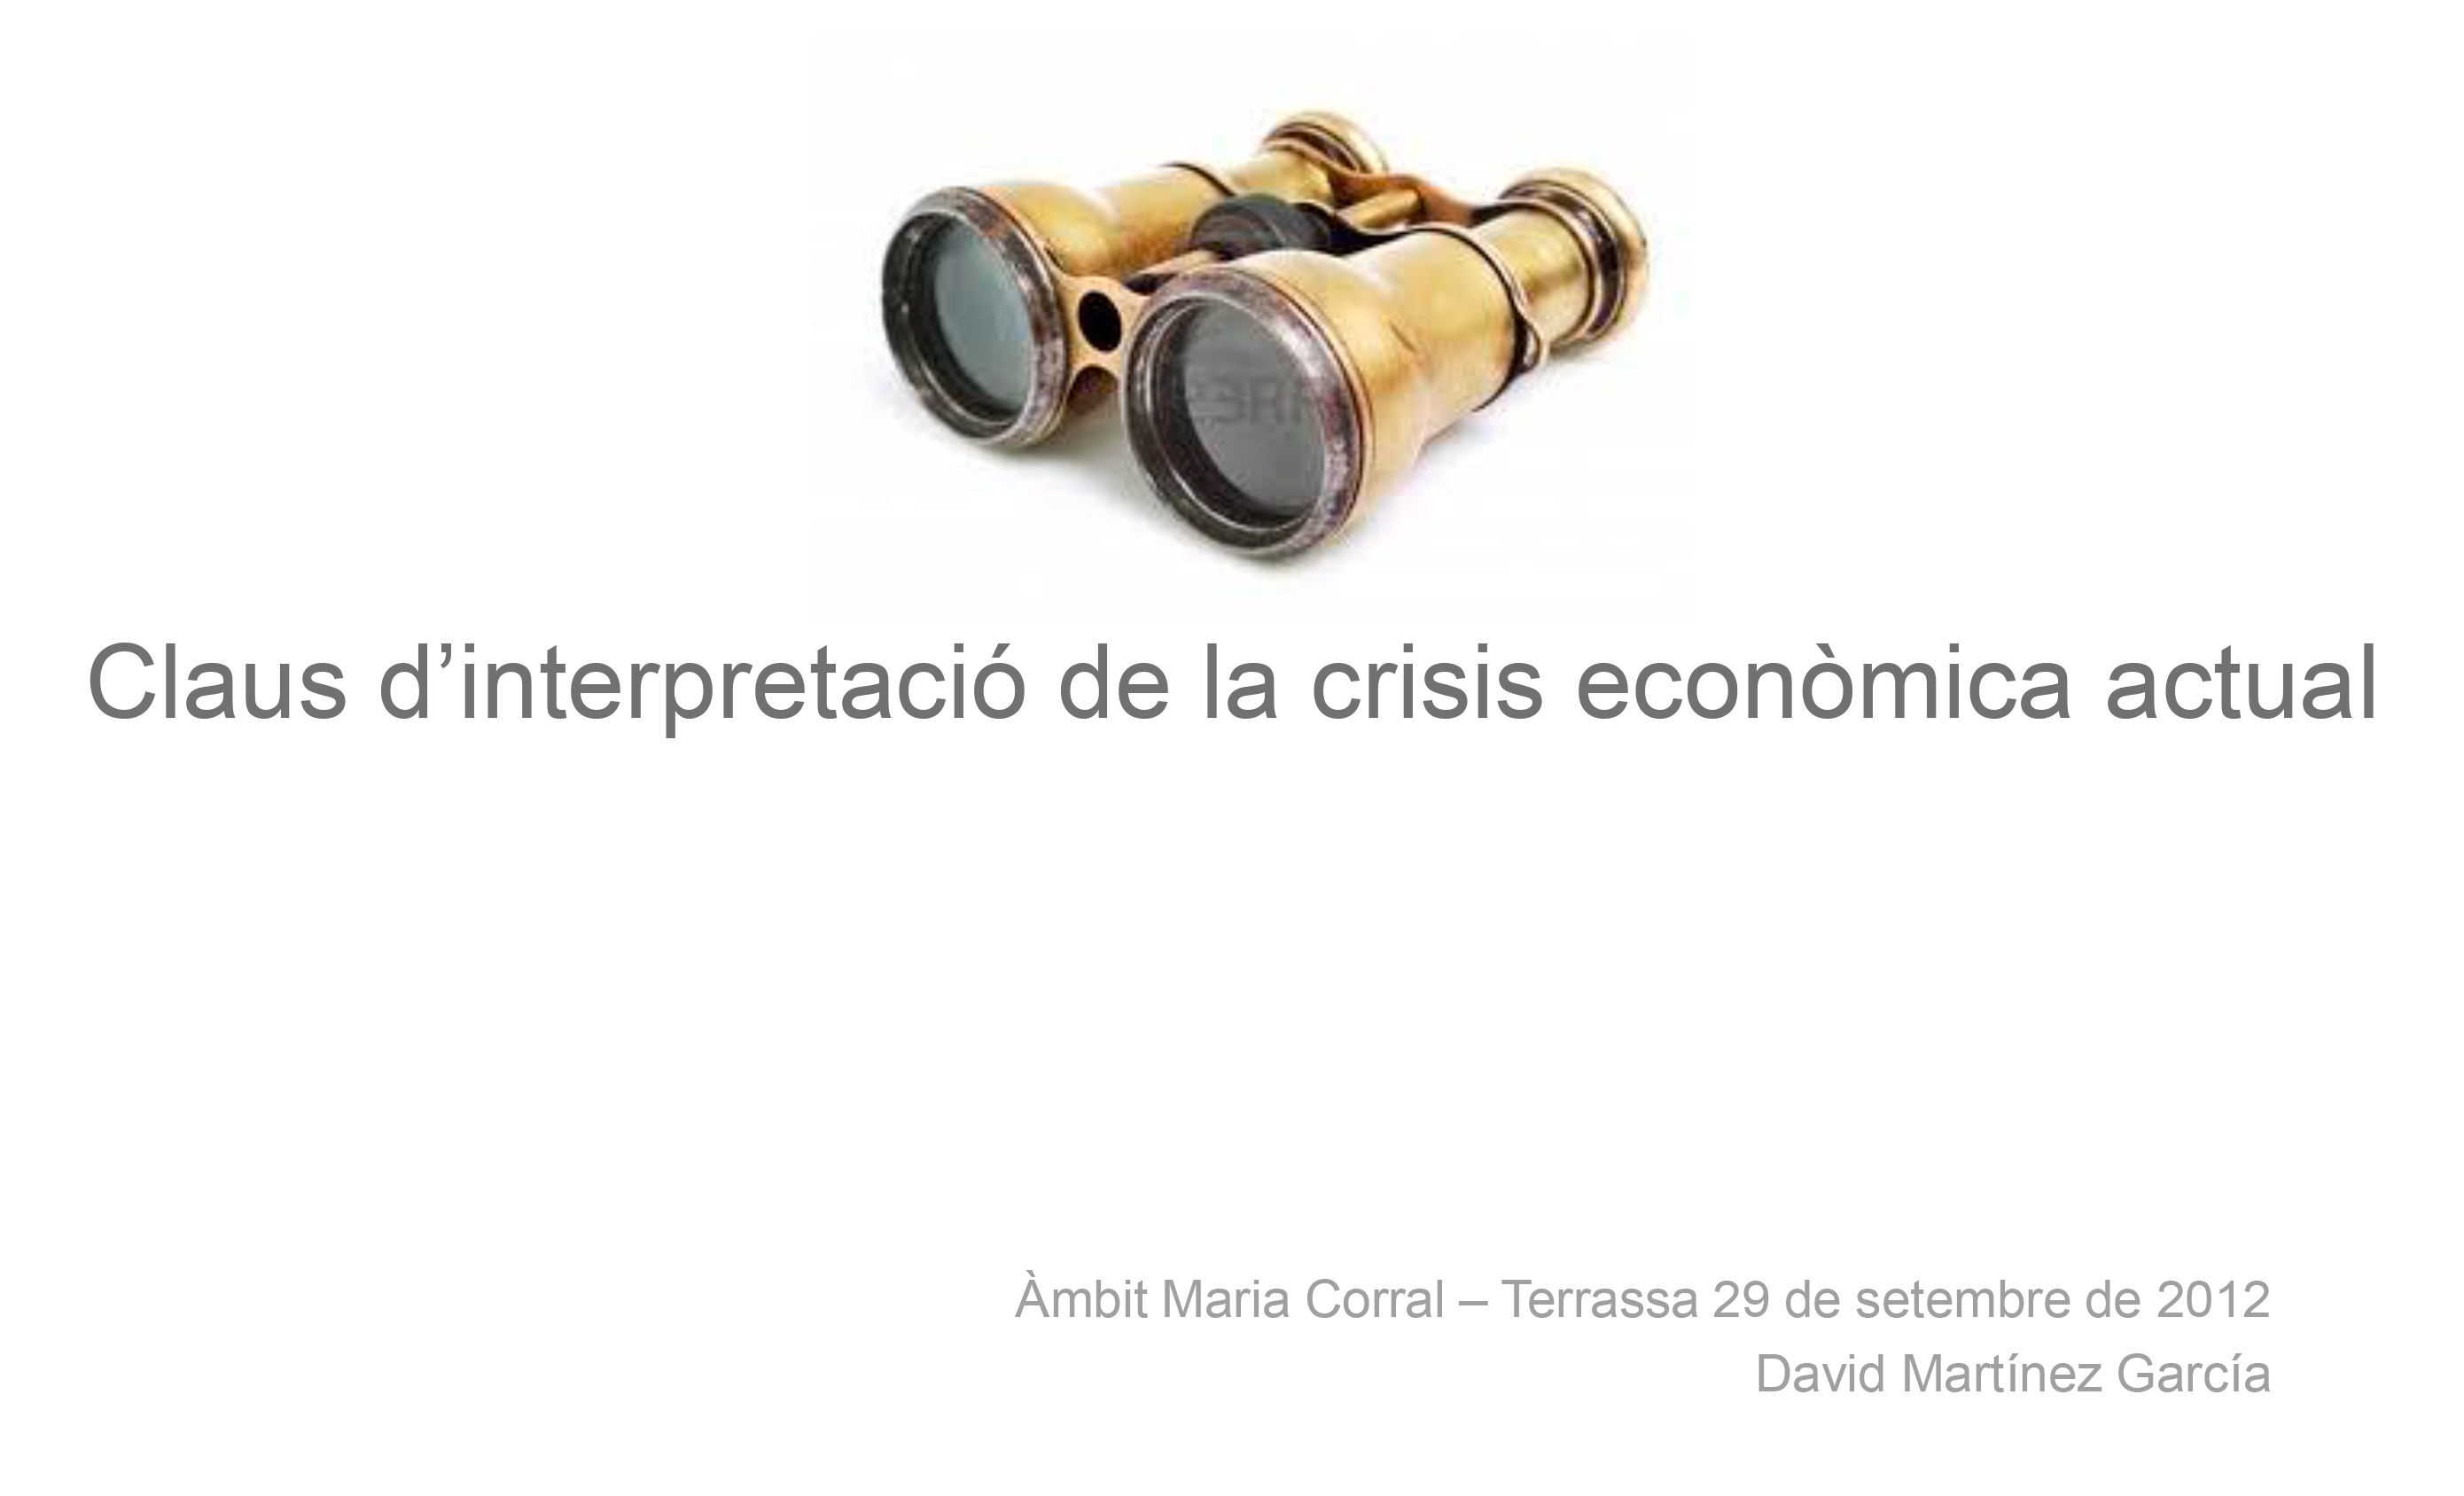 targeta-claus-interpretacio-crisi-set-2012-1